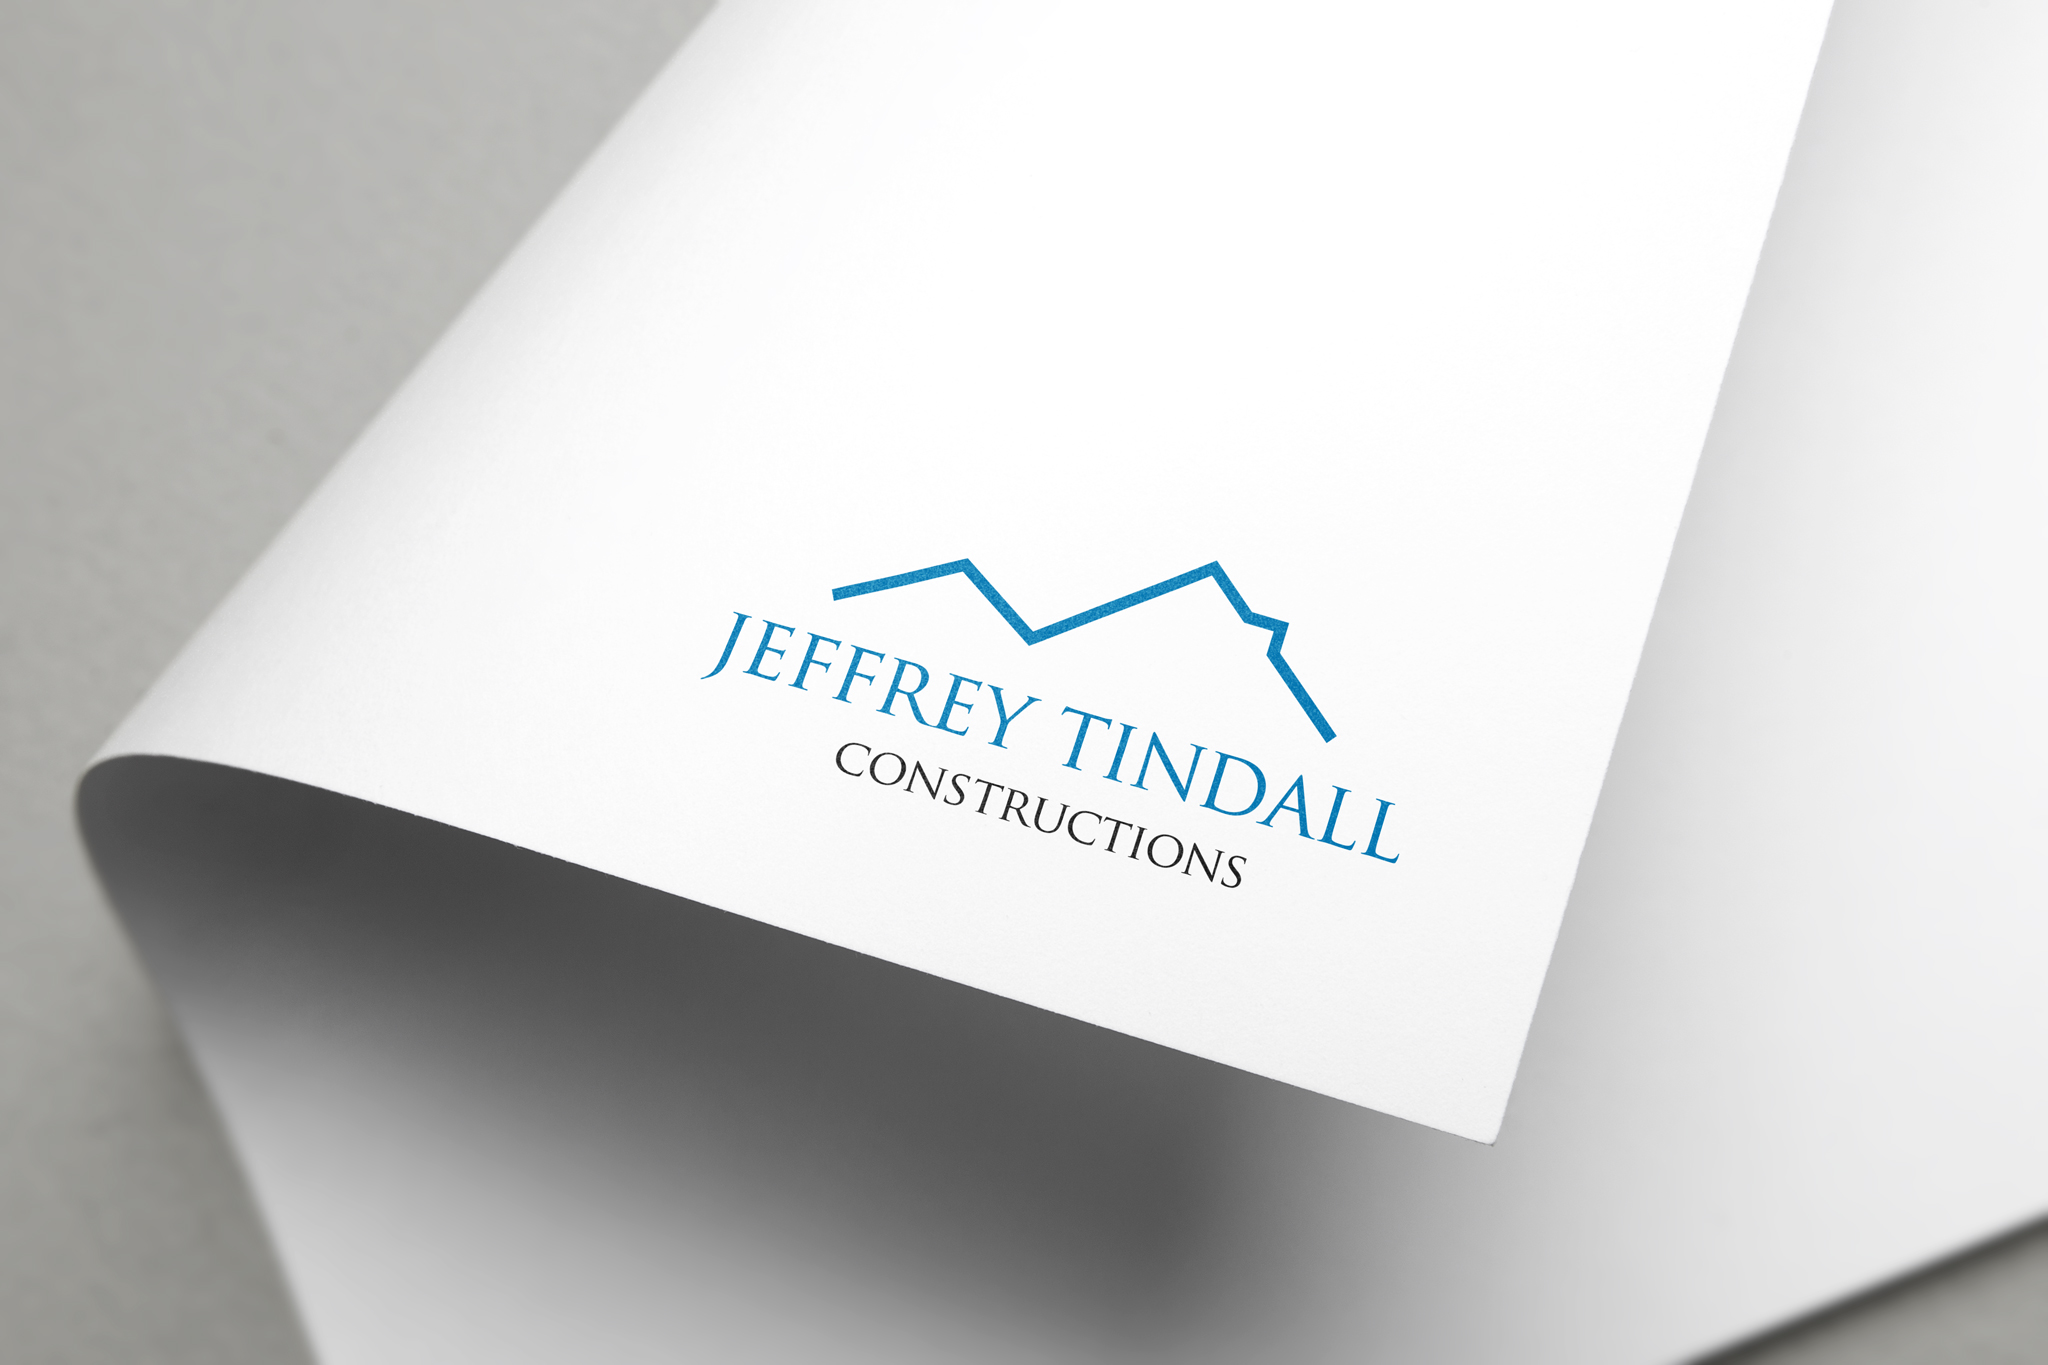 Jeffrey Tindall Constructions